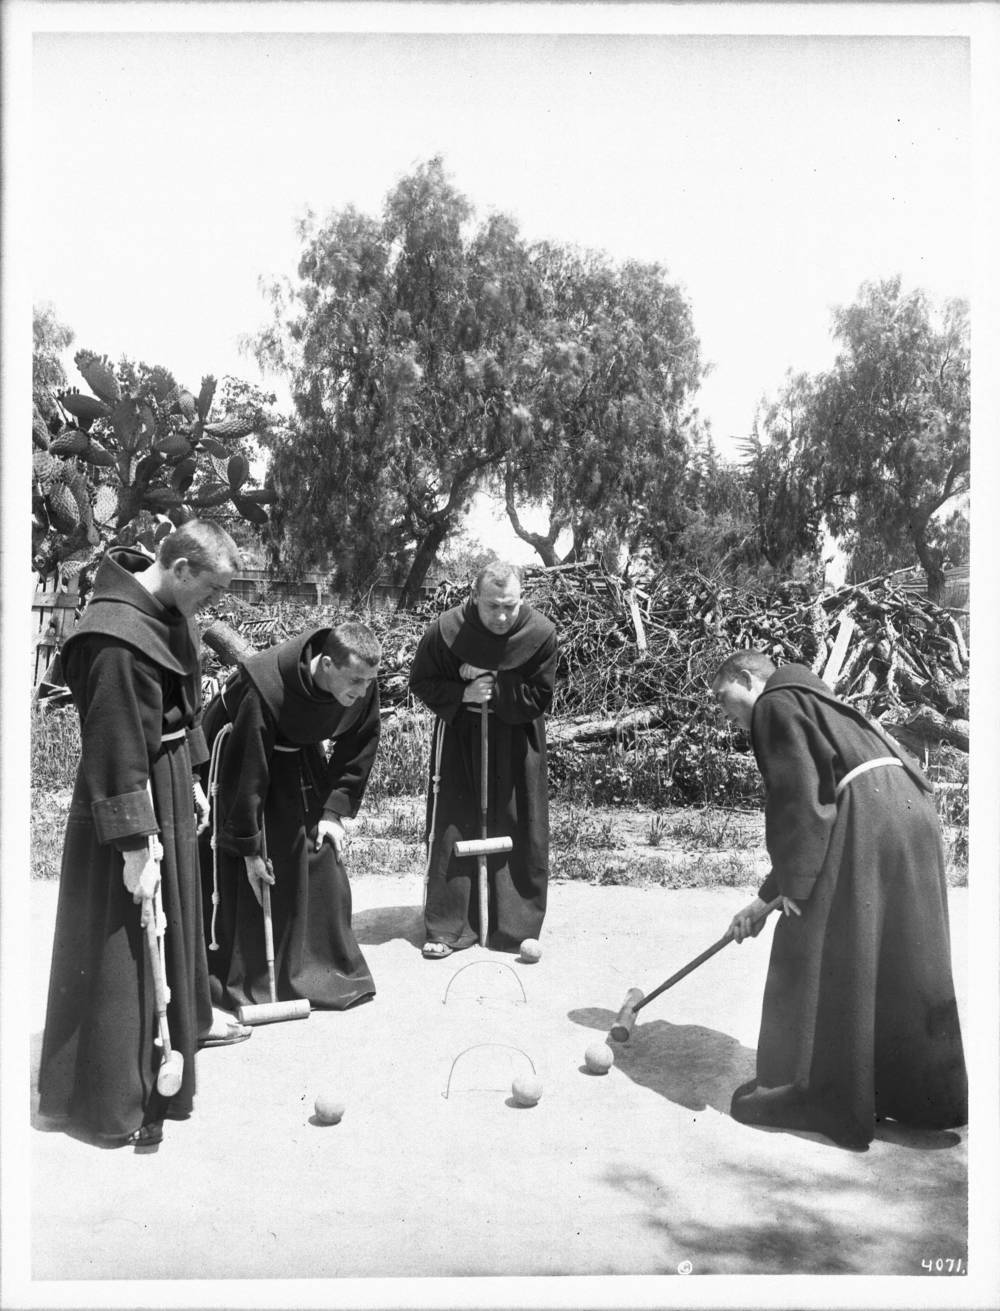 Four_Franciscan_monks_playing_croquet_at_Mission_Santa_Barbara,_ca.1904_(CHS-4071).jpg